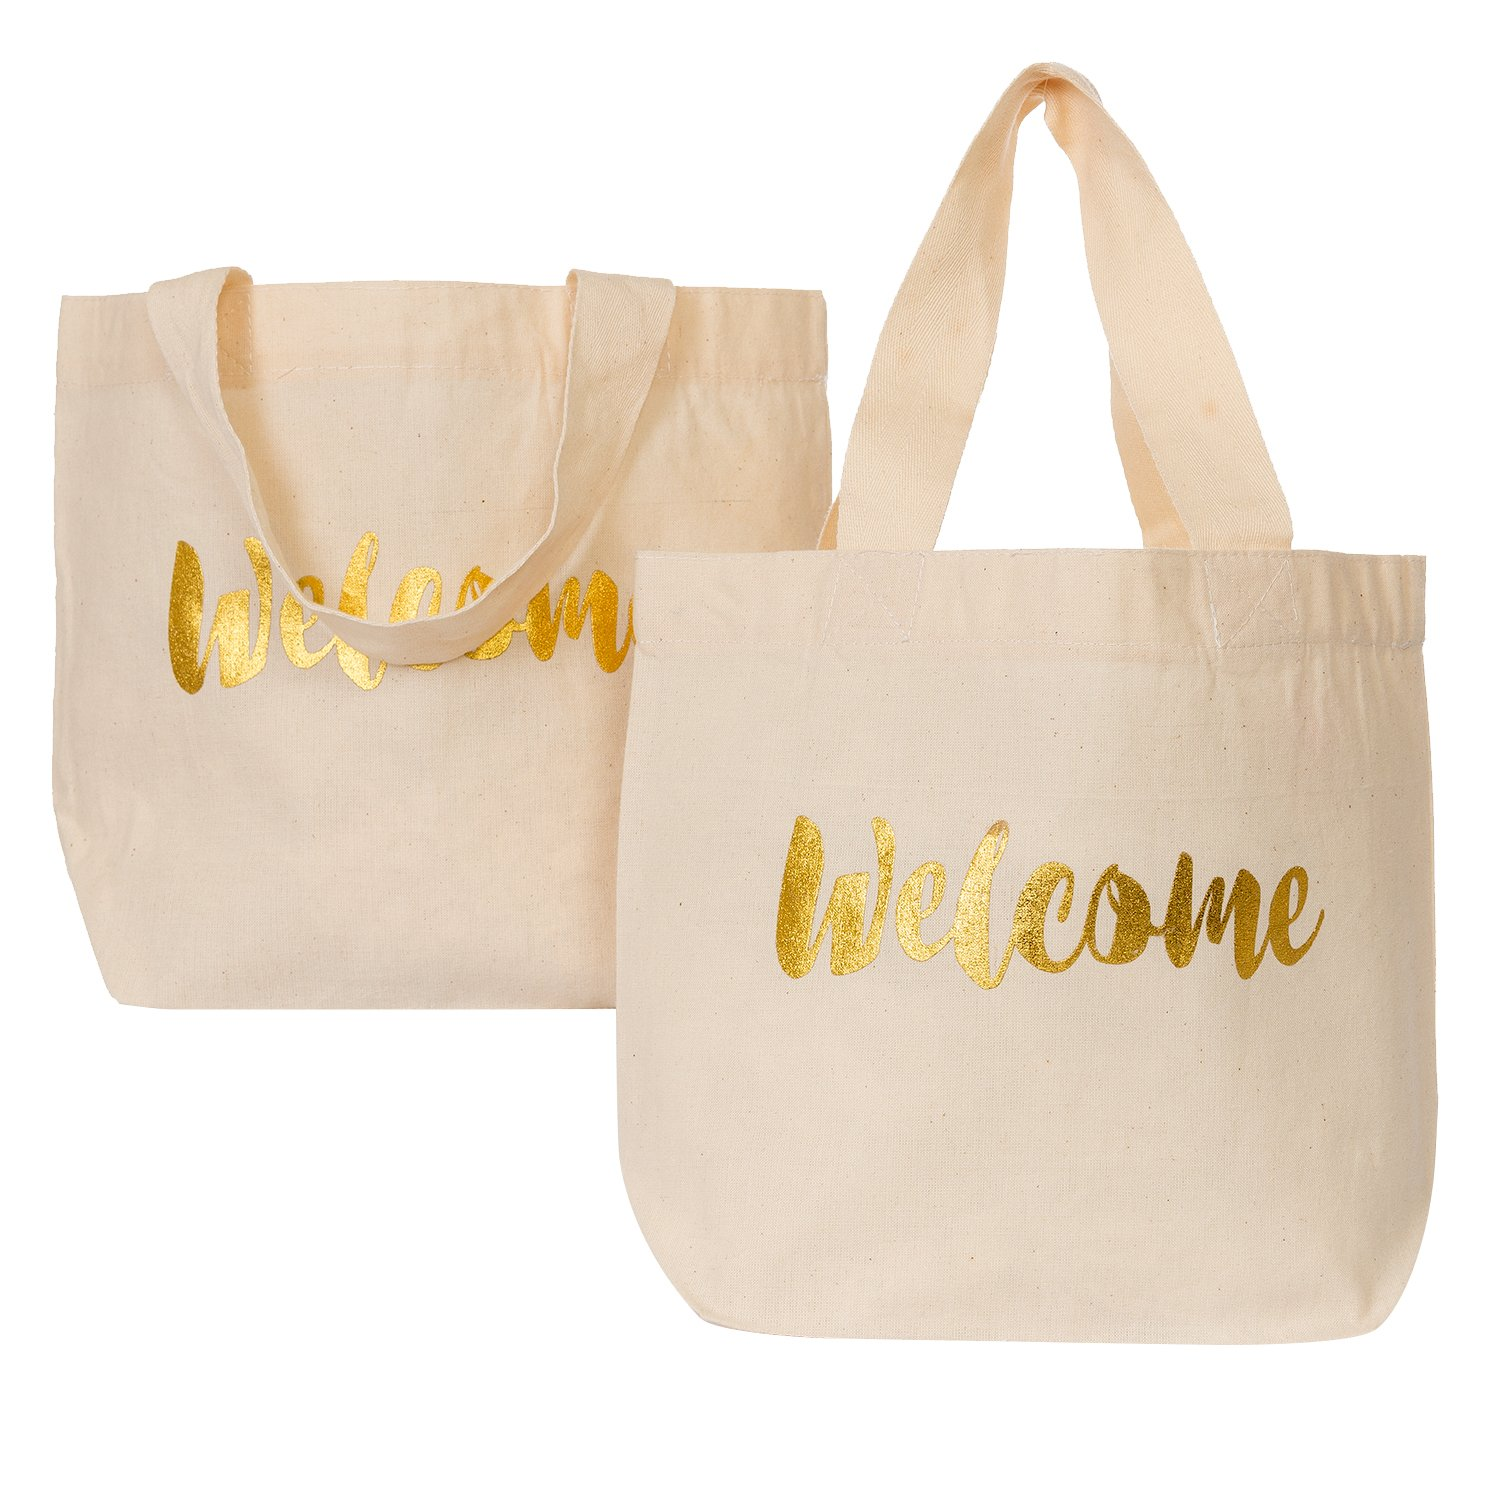 Ling's moment Wedding Welcome Gift Bag Medium Canvas Tote Bag for Hotel Guests Wedding Favors Christmas Thanksgiving Party Gift Bags, Soft Sturdy Fabric and Handle, Reusable, Set of 10